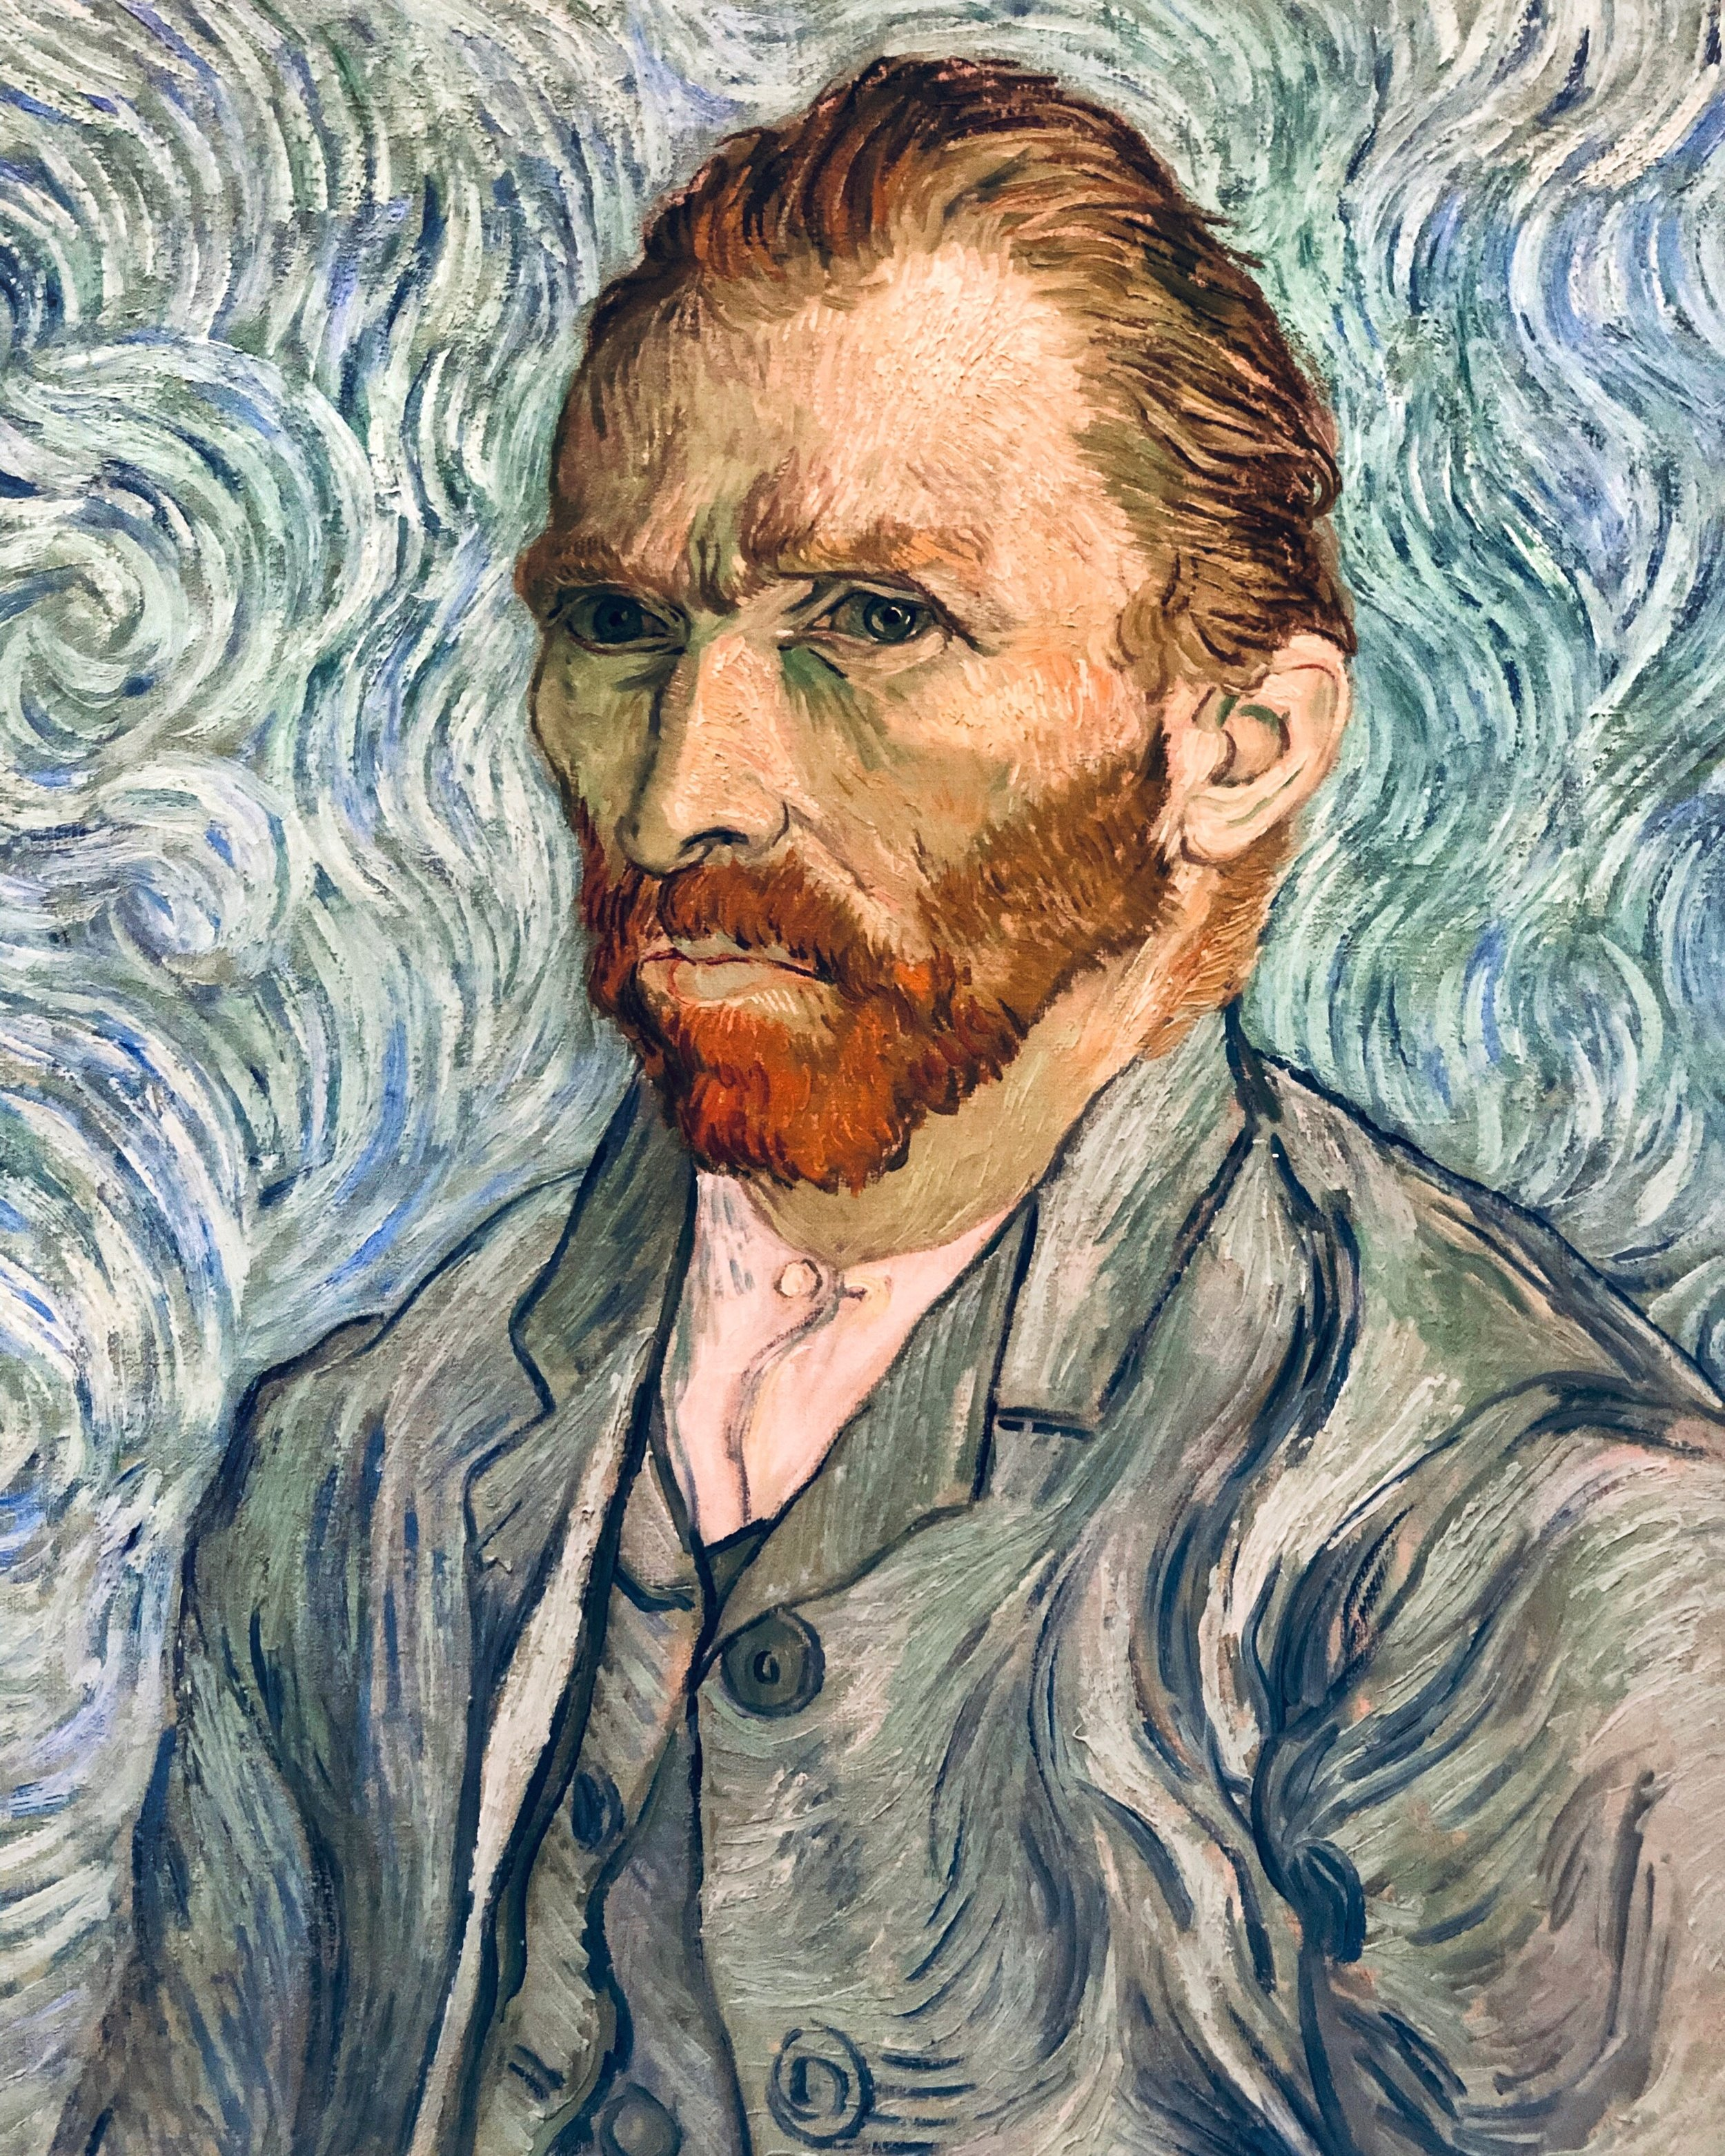 Vincent Van Gogh, 1889 at the Musee D'orsay in Paris.